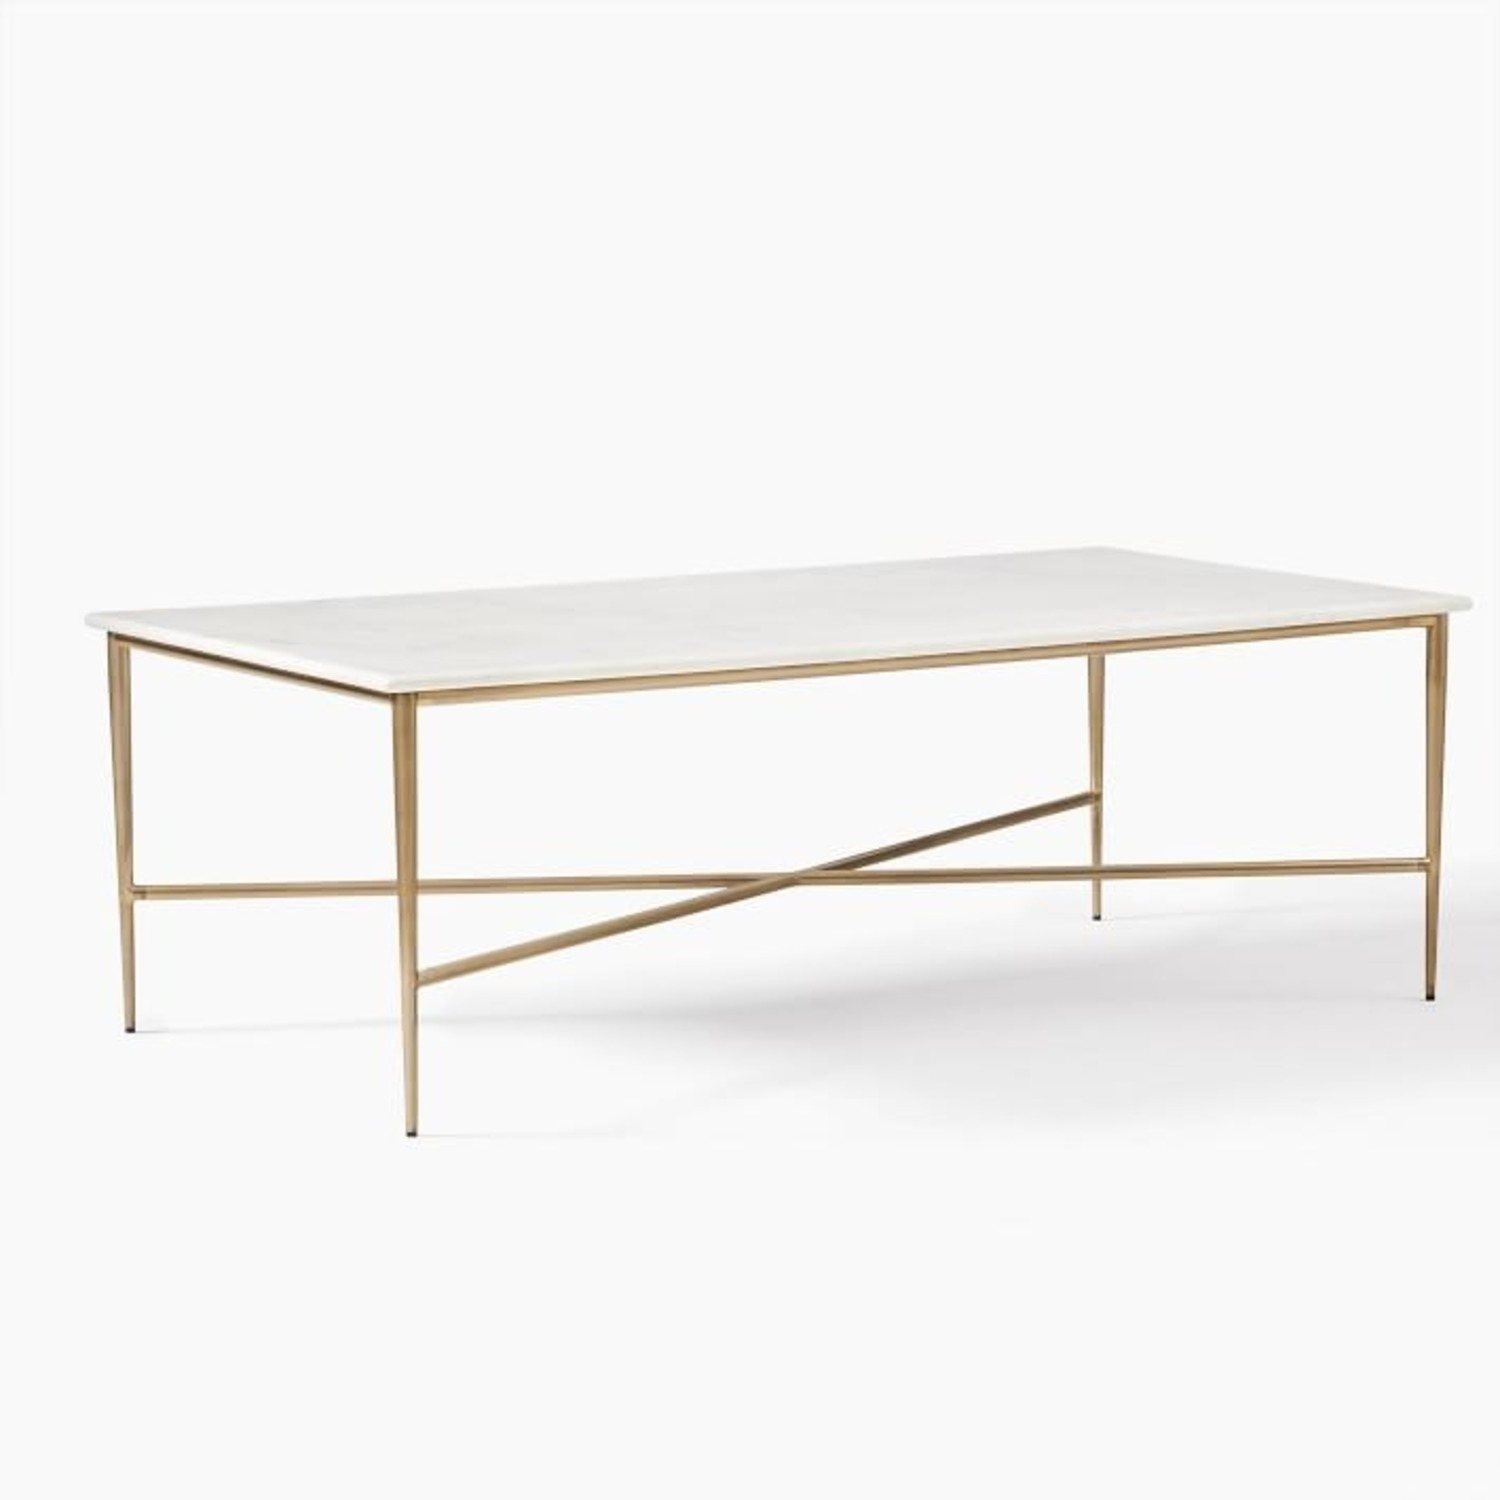 West Elm Neve Rectangle Coffee Table - image-1